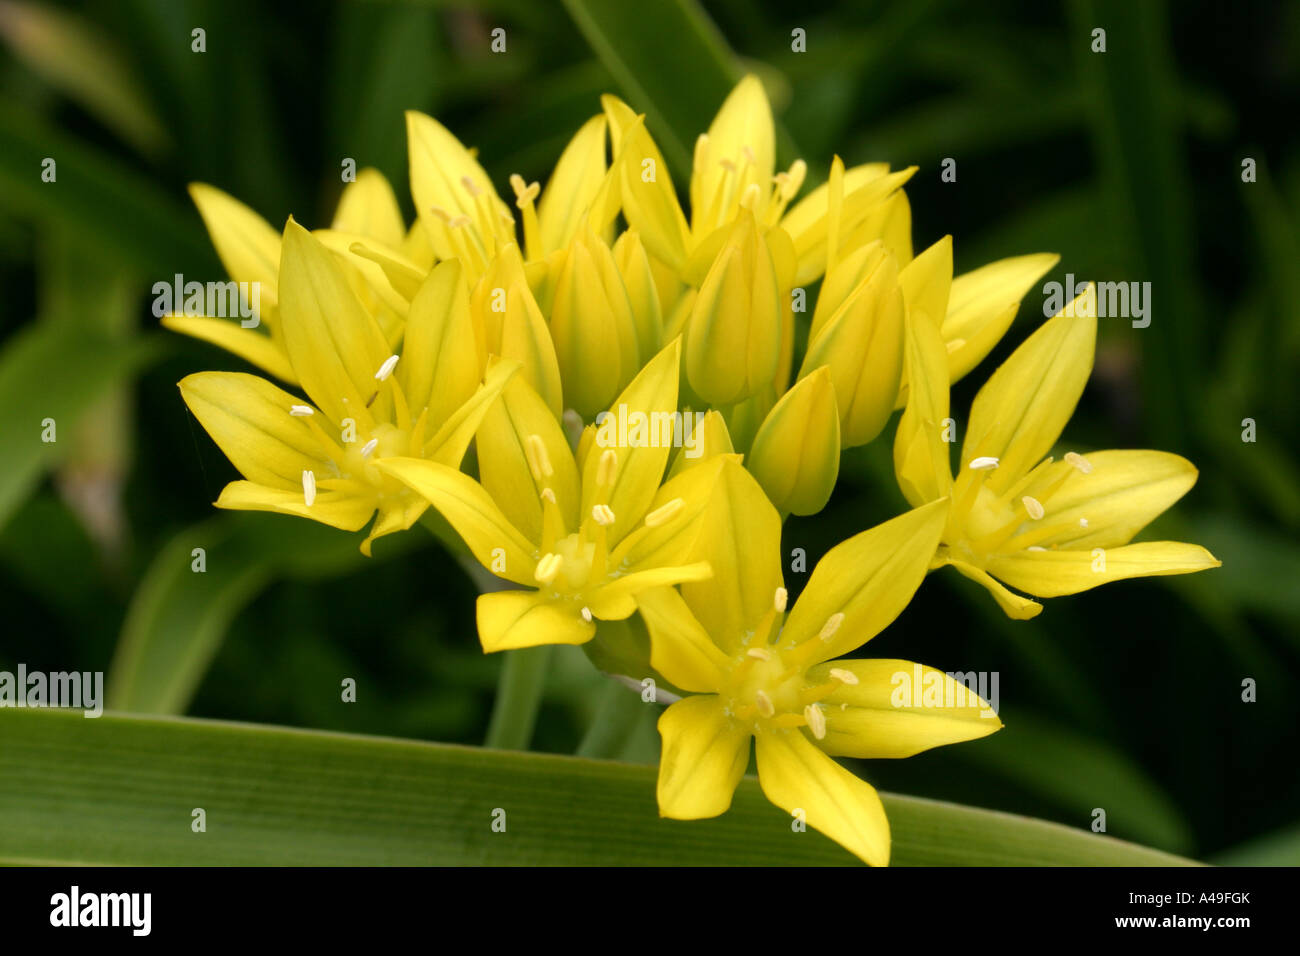 Yellow Star Shaped Flowers Of Plant Allium Moly Stock Photo